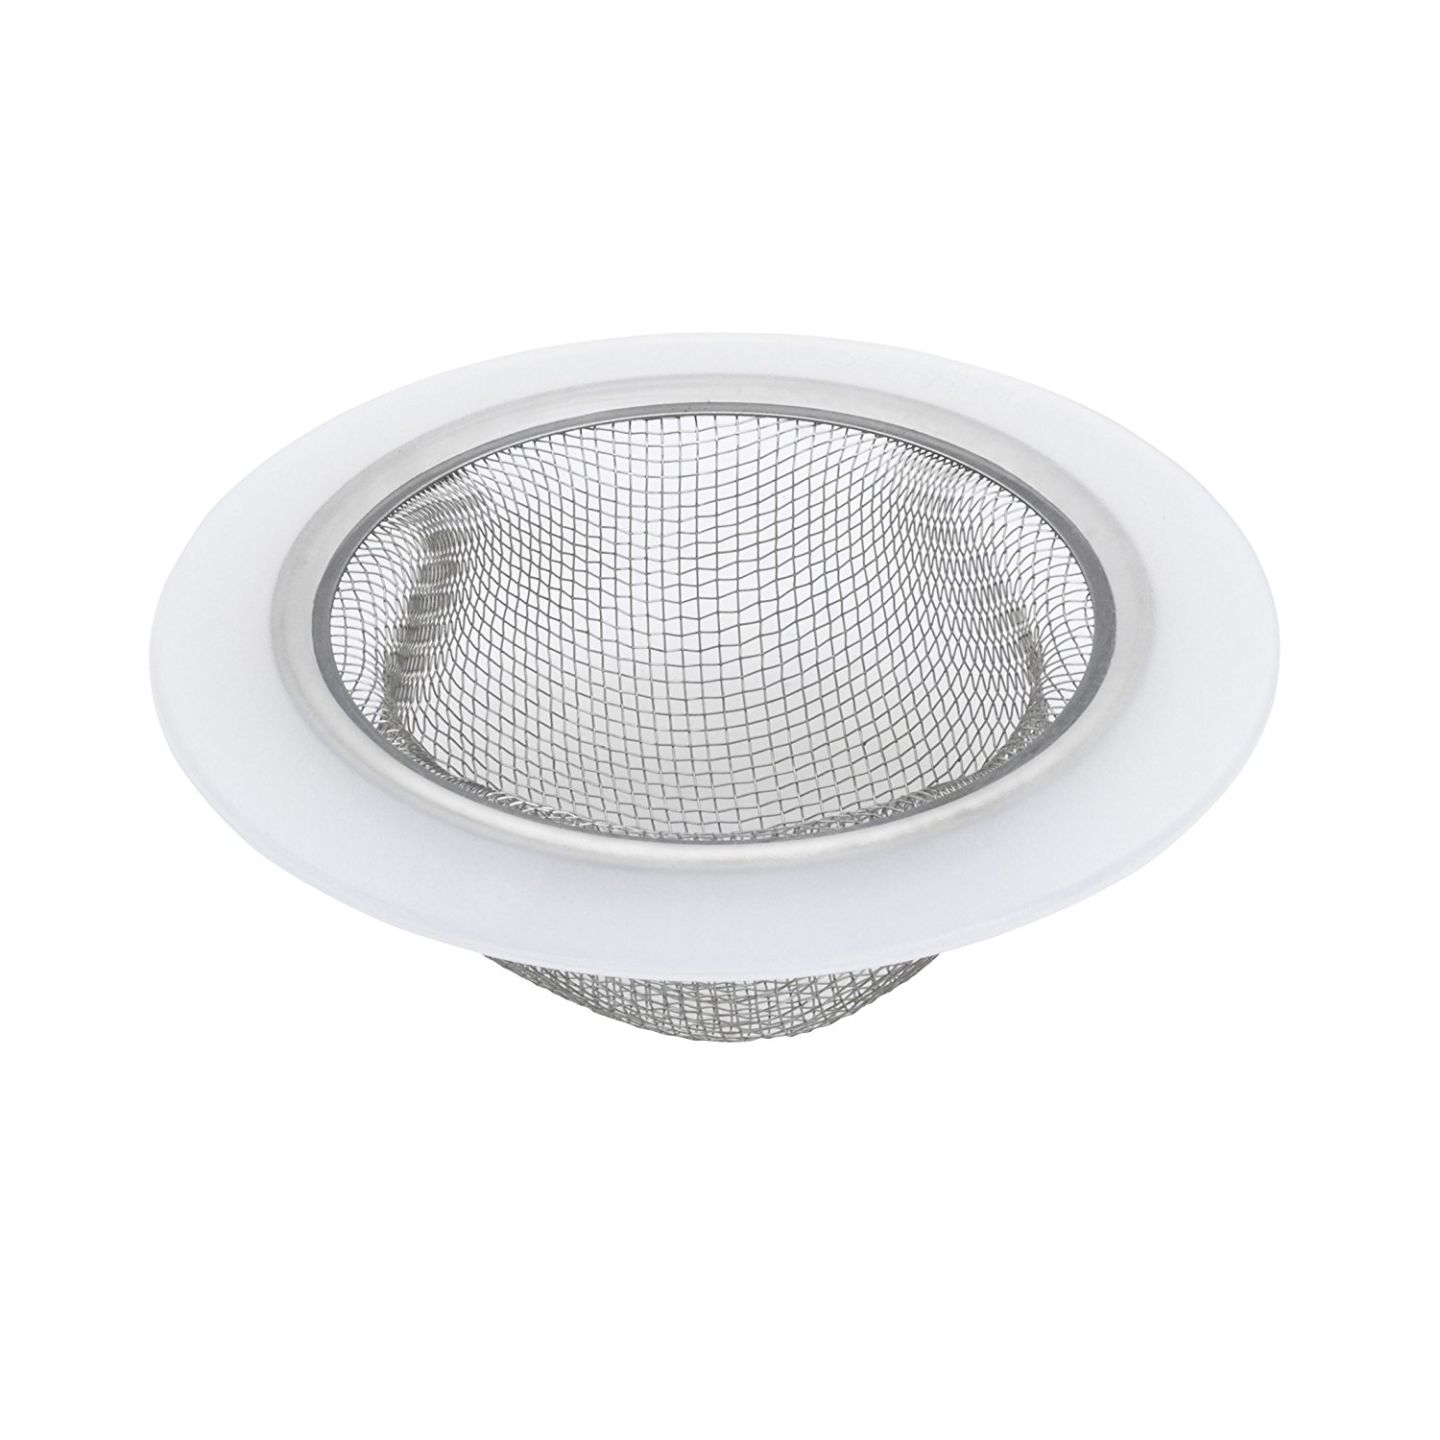 A Mesh Strainer Placed Over Your Sink Drain    Or The Kind That Suctions  Shut So You Can Fill The Sink    Protects The Pipes. Just Donu0027t Forget To  Clean The ...